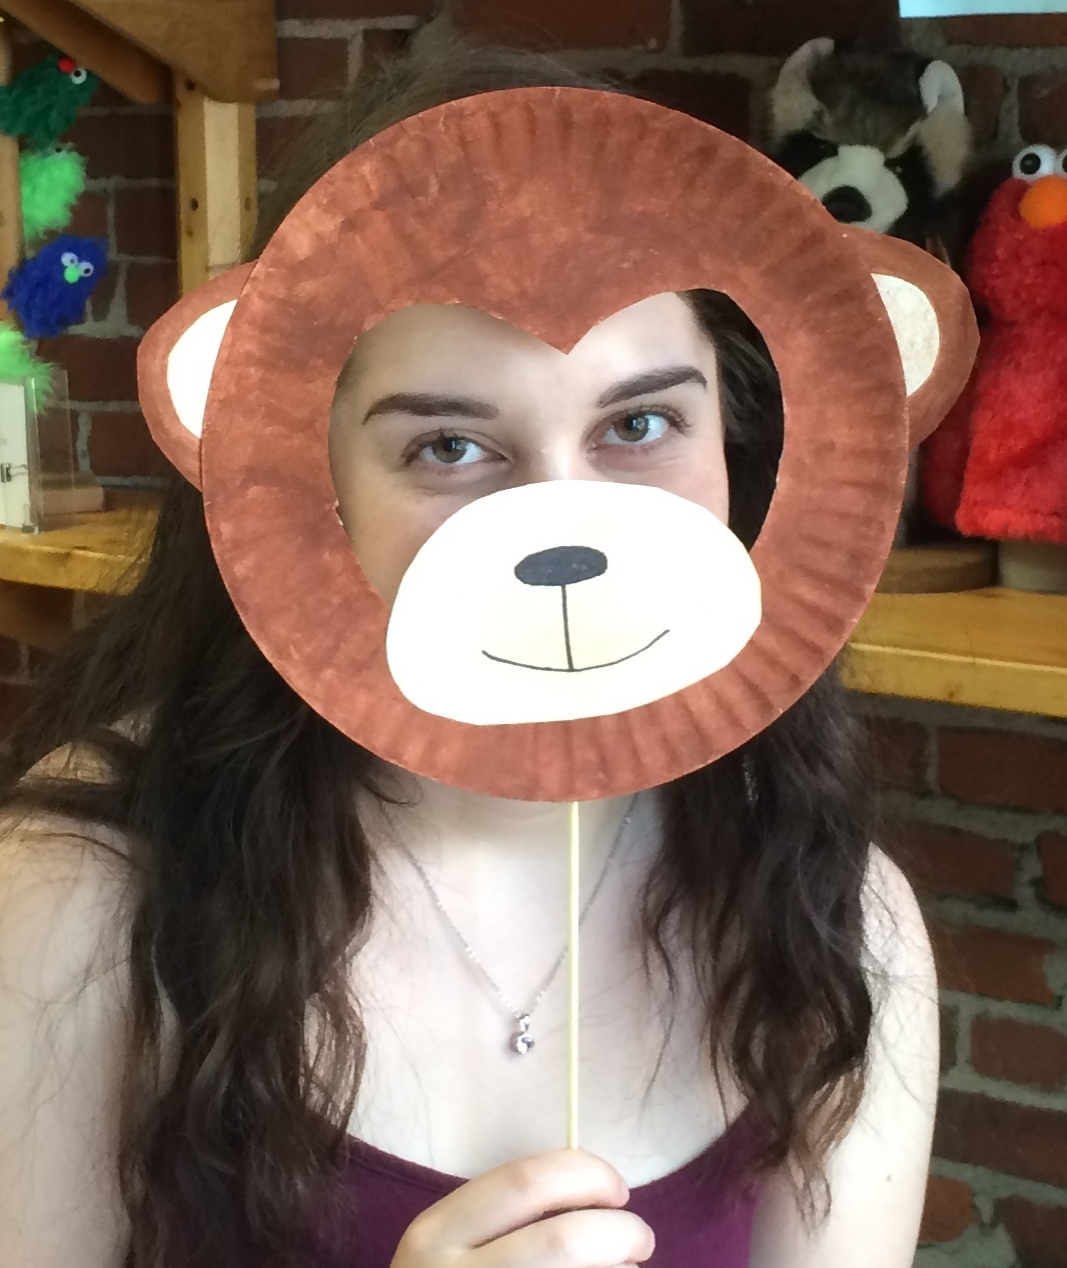 Our intern, Shona, posing with the monkey mask she made.